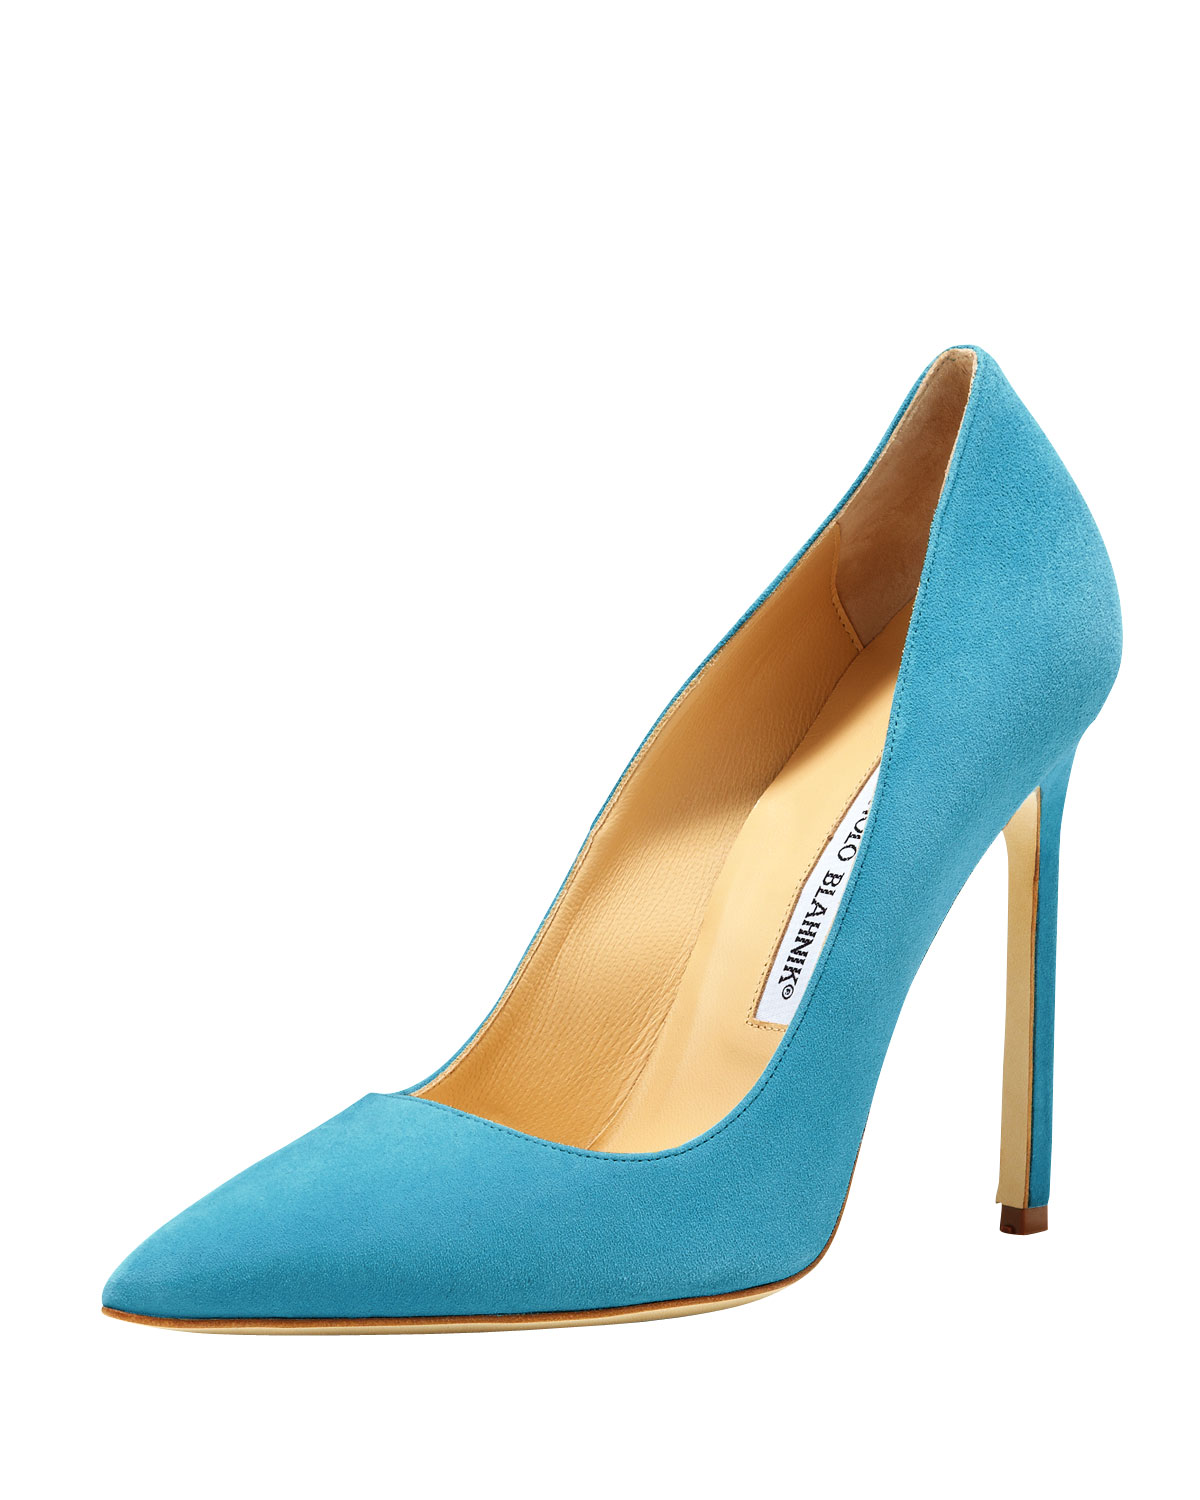 Manolo Blahnik BB Suede 115mm Pump, Malibu Blue